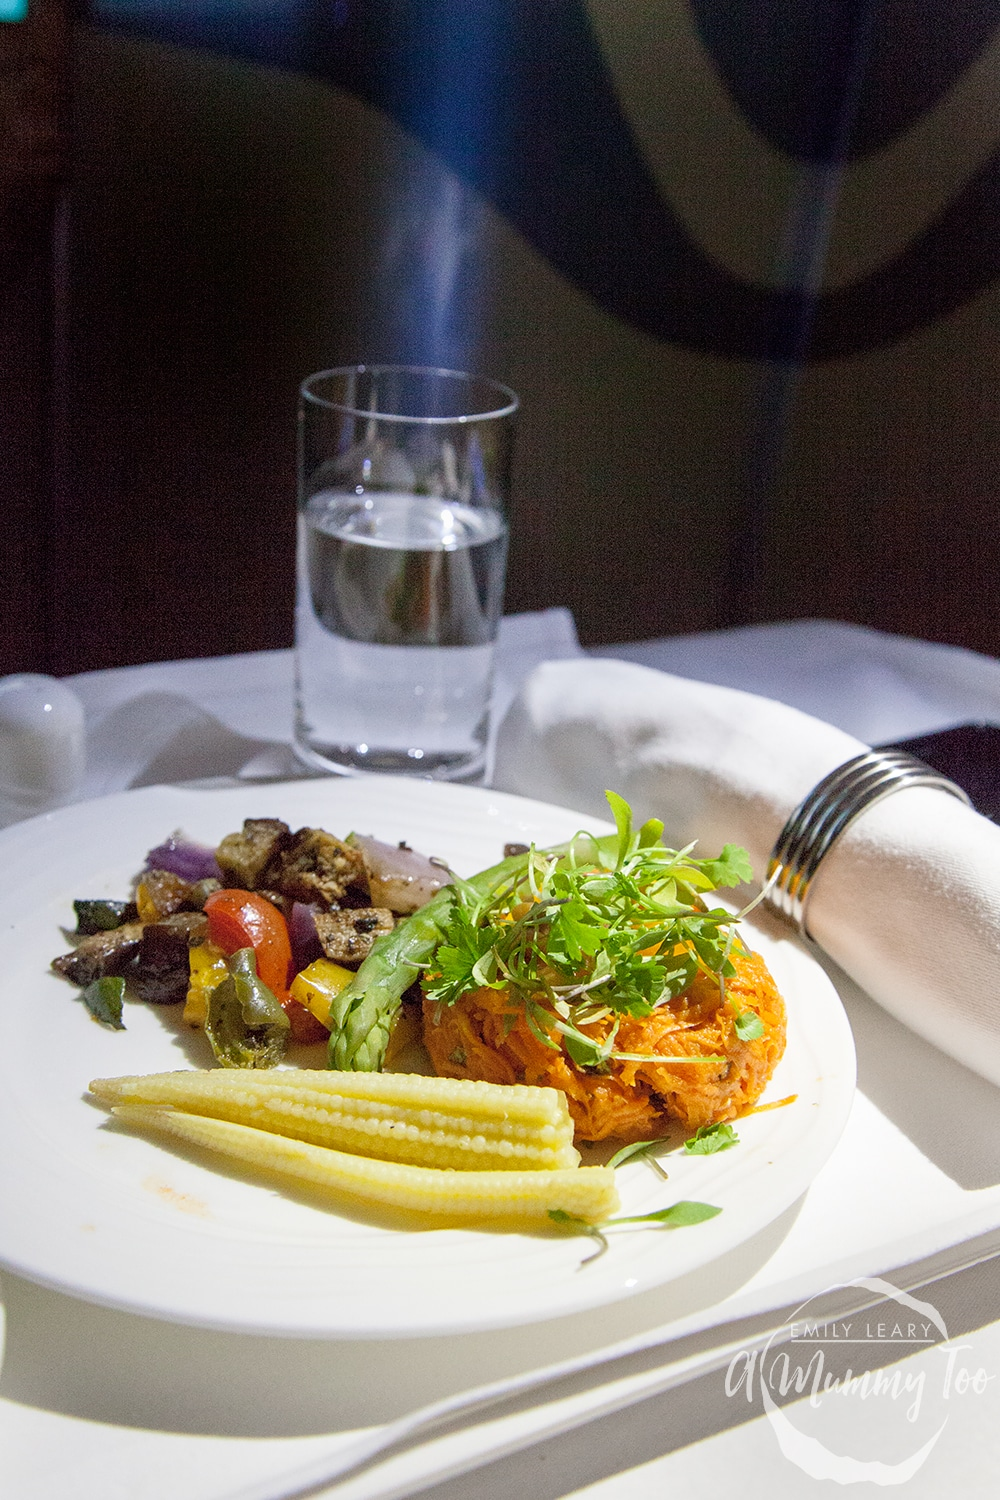 emirates-flight-to-dubai-business-class-cold-salad-starter